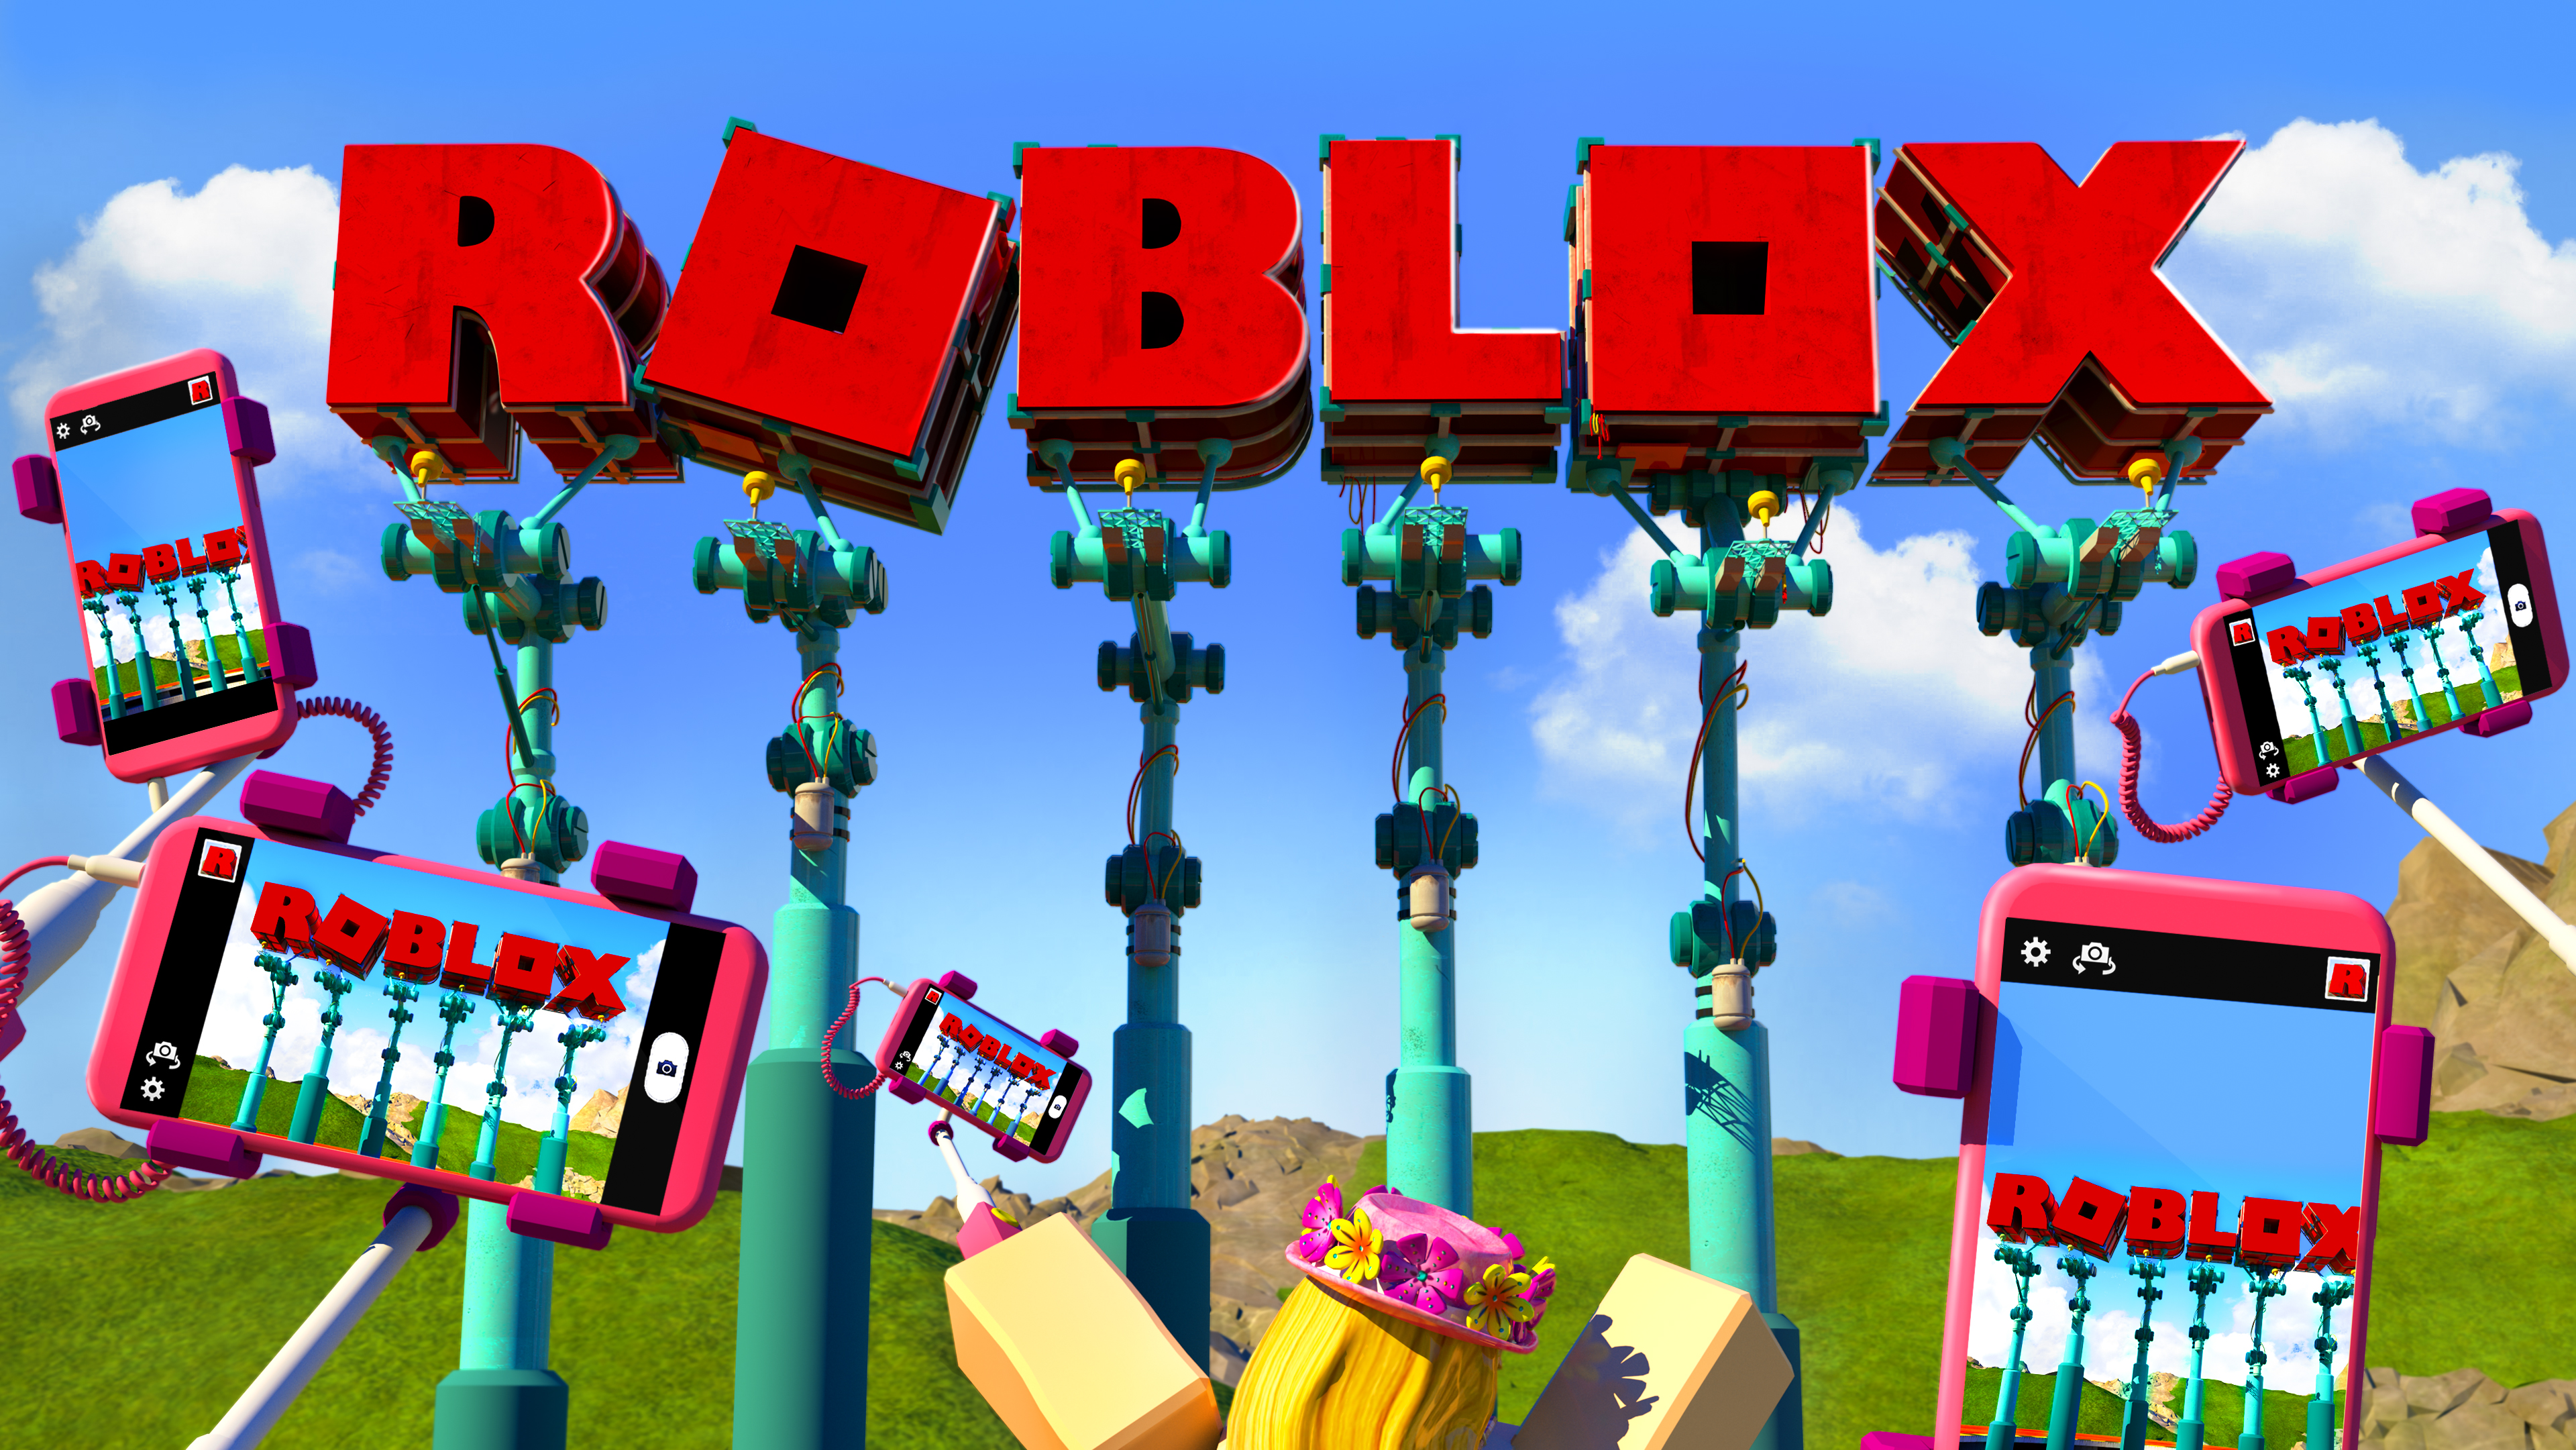 online dating games on roblox youtube 2016 download windows 10